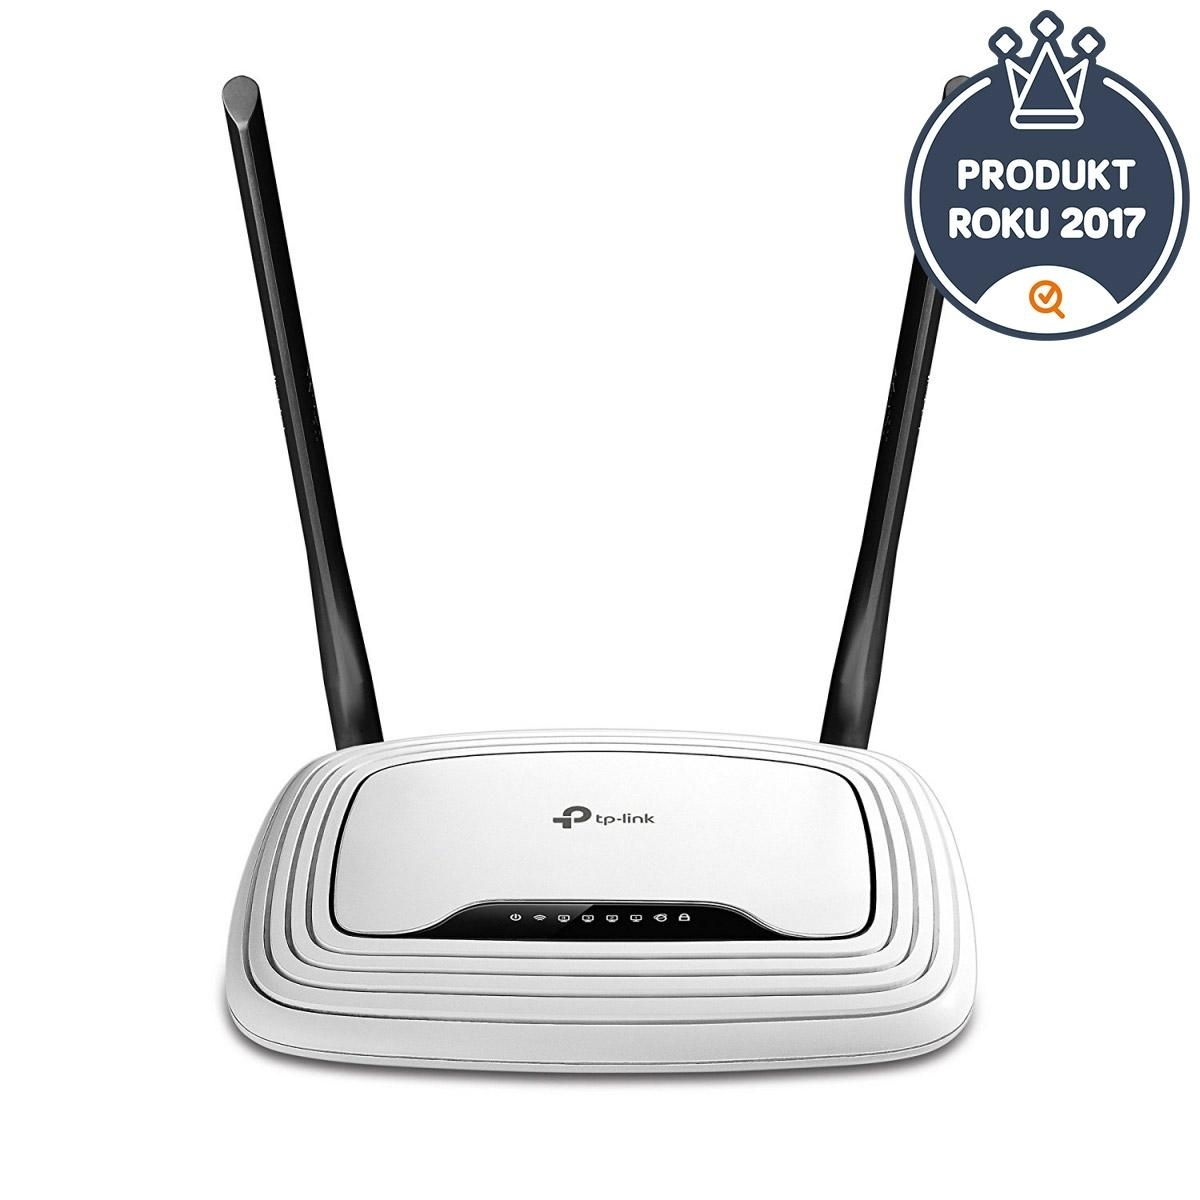 WiFi router TP-Link TL-WR841N AP/router, 4x LAN, 1x WAN (2,4GHz, 802.11n) 300Mbps TL-WR841N